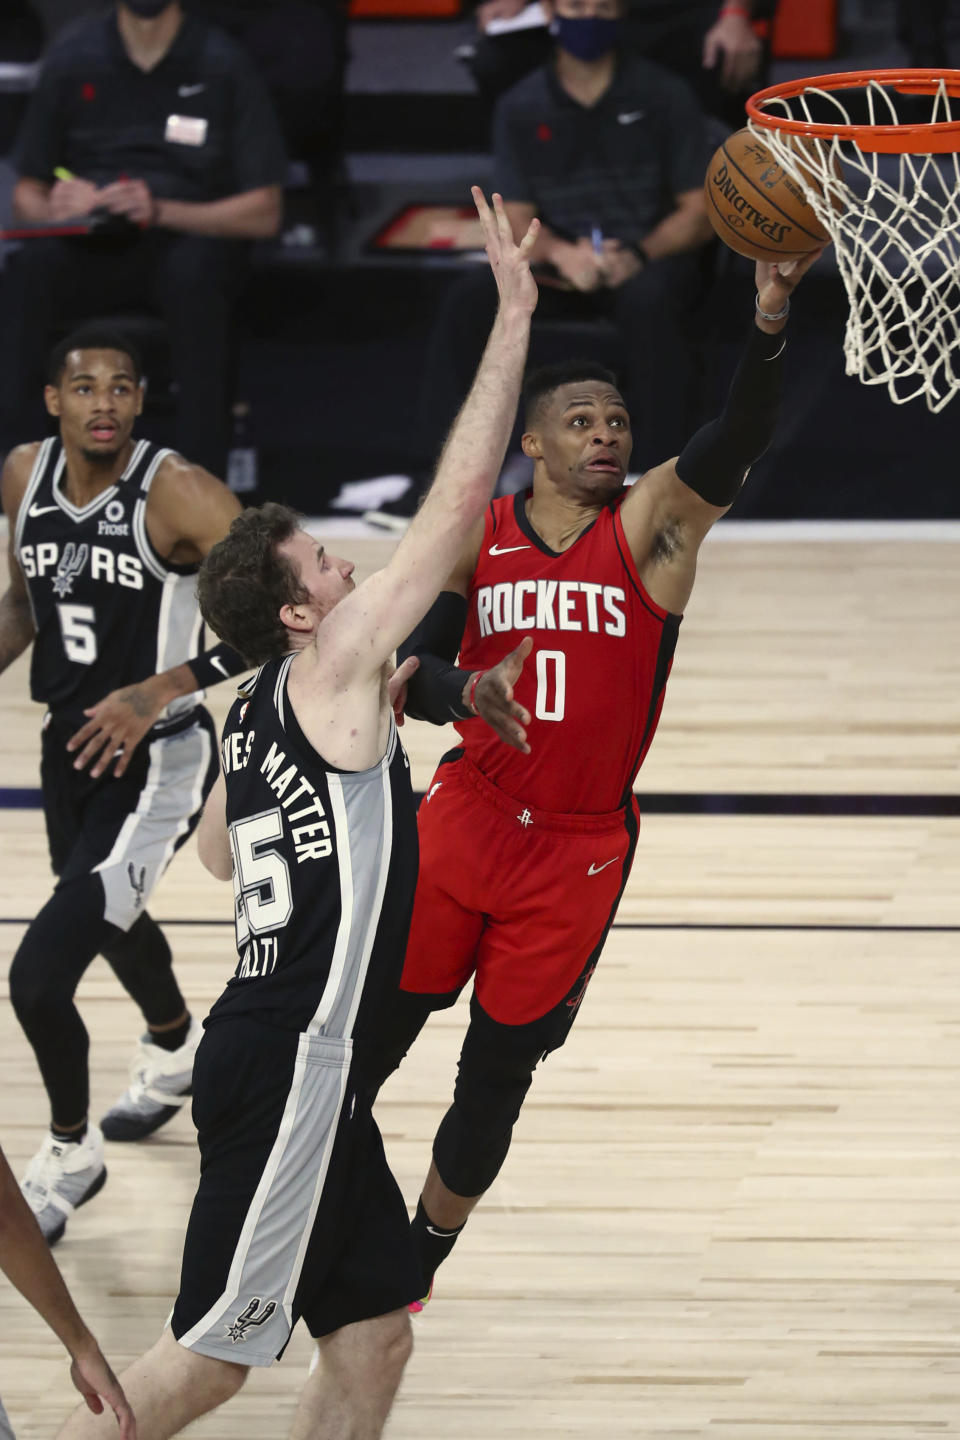 Houston Rockets guard Russell Westbrook (0) goes up for a shot past San Antonio Spurs center Jakob Poeltl (25) during the first half of an NBA basketball game Tuesday, Aug. 11, 2020, in Lake Buena Vista, Fla. (Kim Klement/Pool Photo via AP)